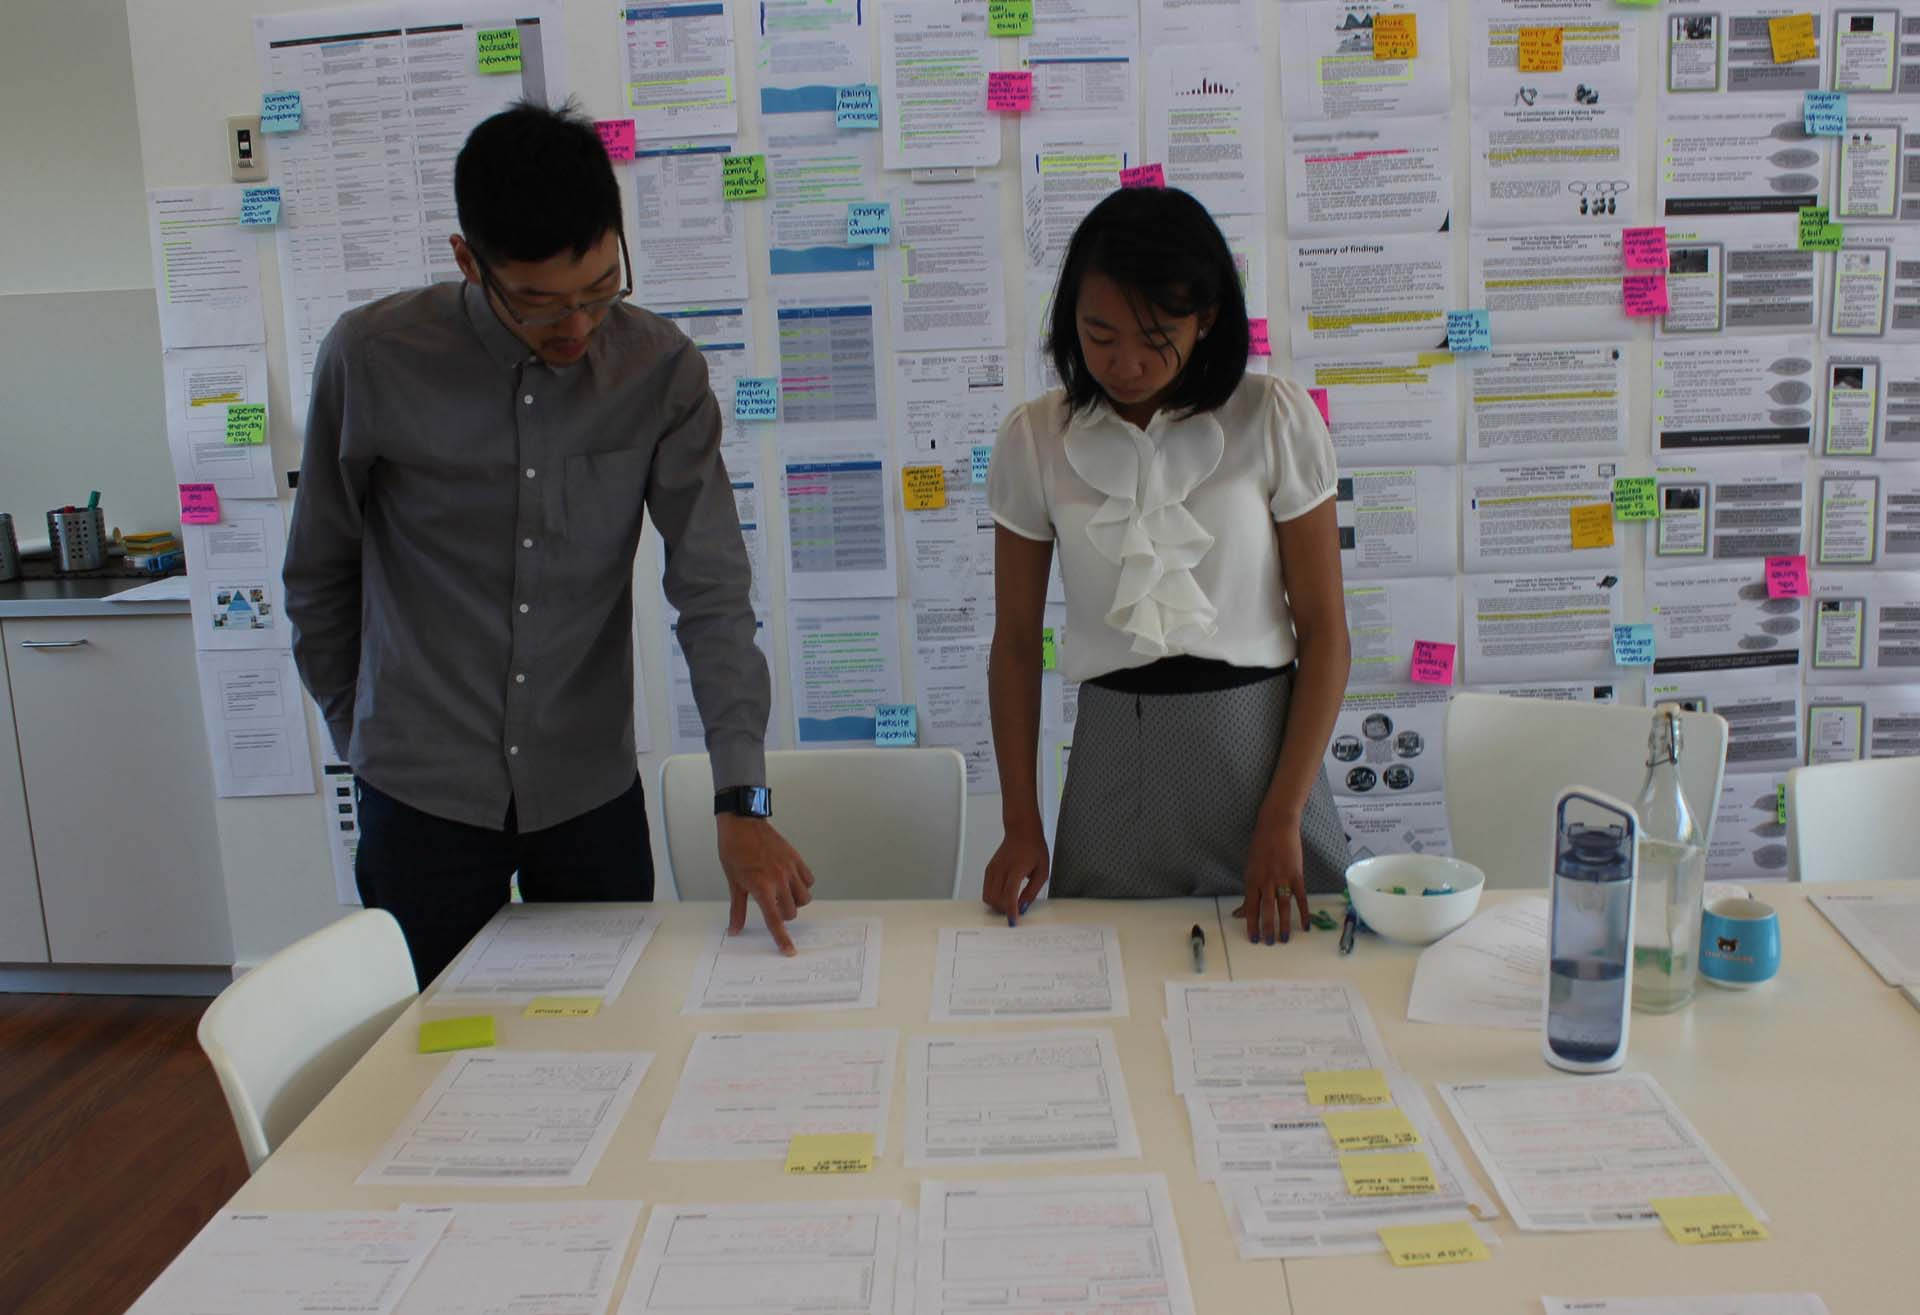 Two proto experience designers analysing research data